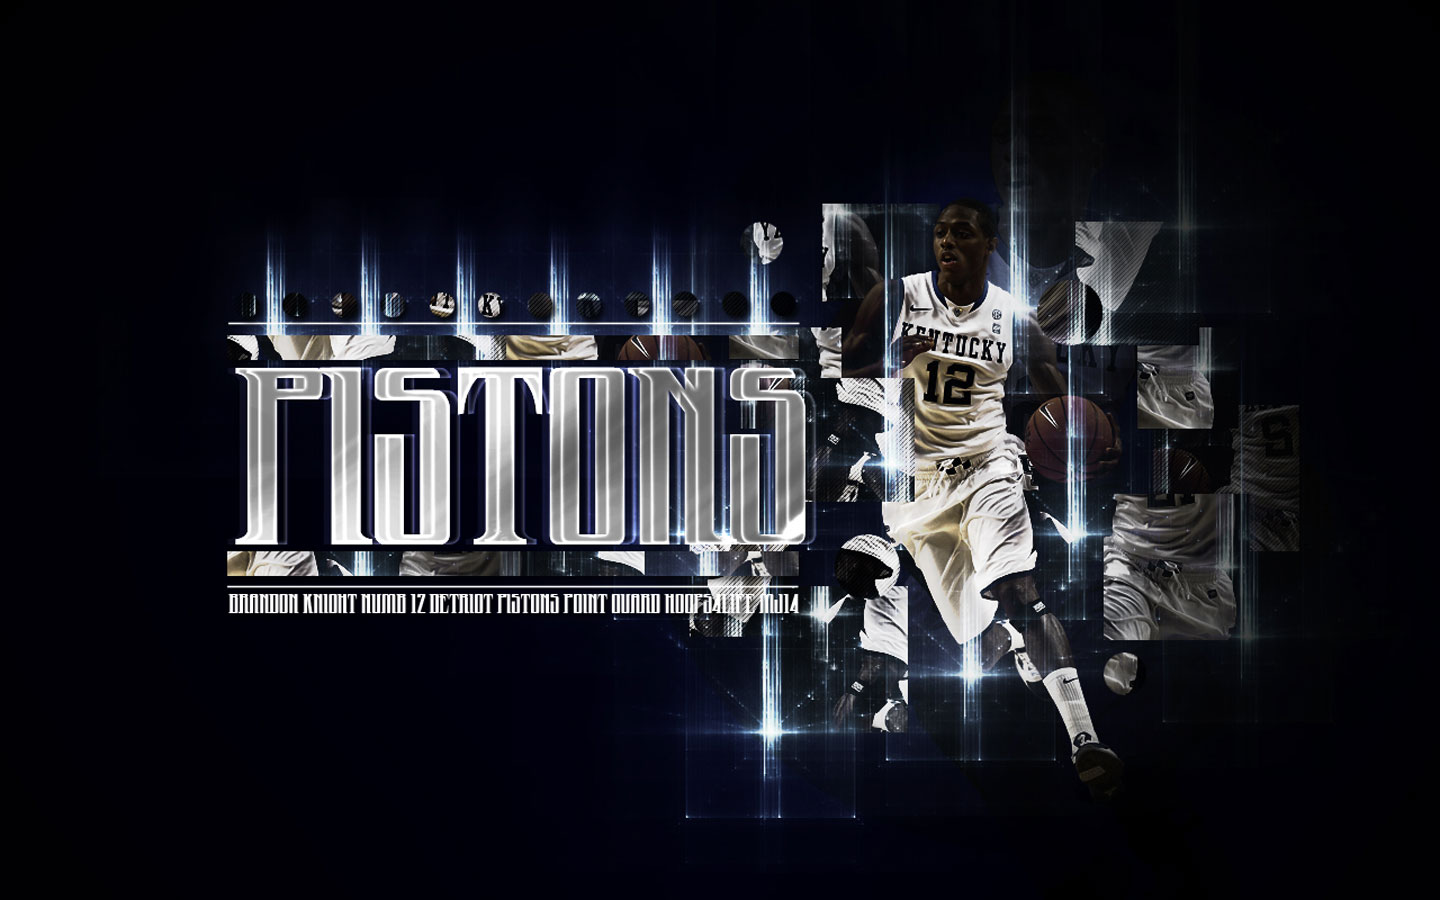 Detroit Pistons Brandon Knight Kentucky Widescreen Wallpaper Big Fan Of NBA